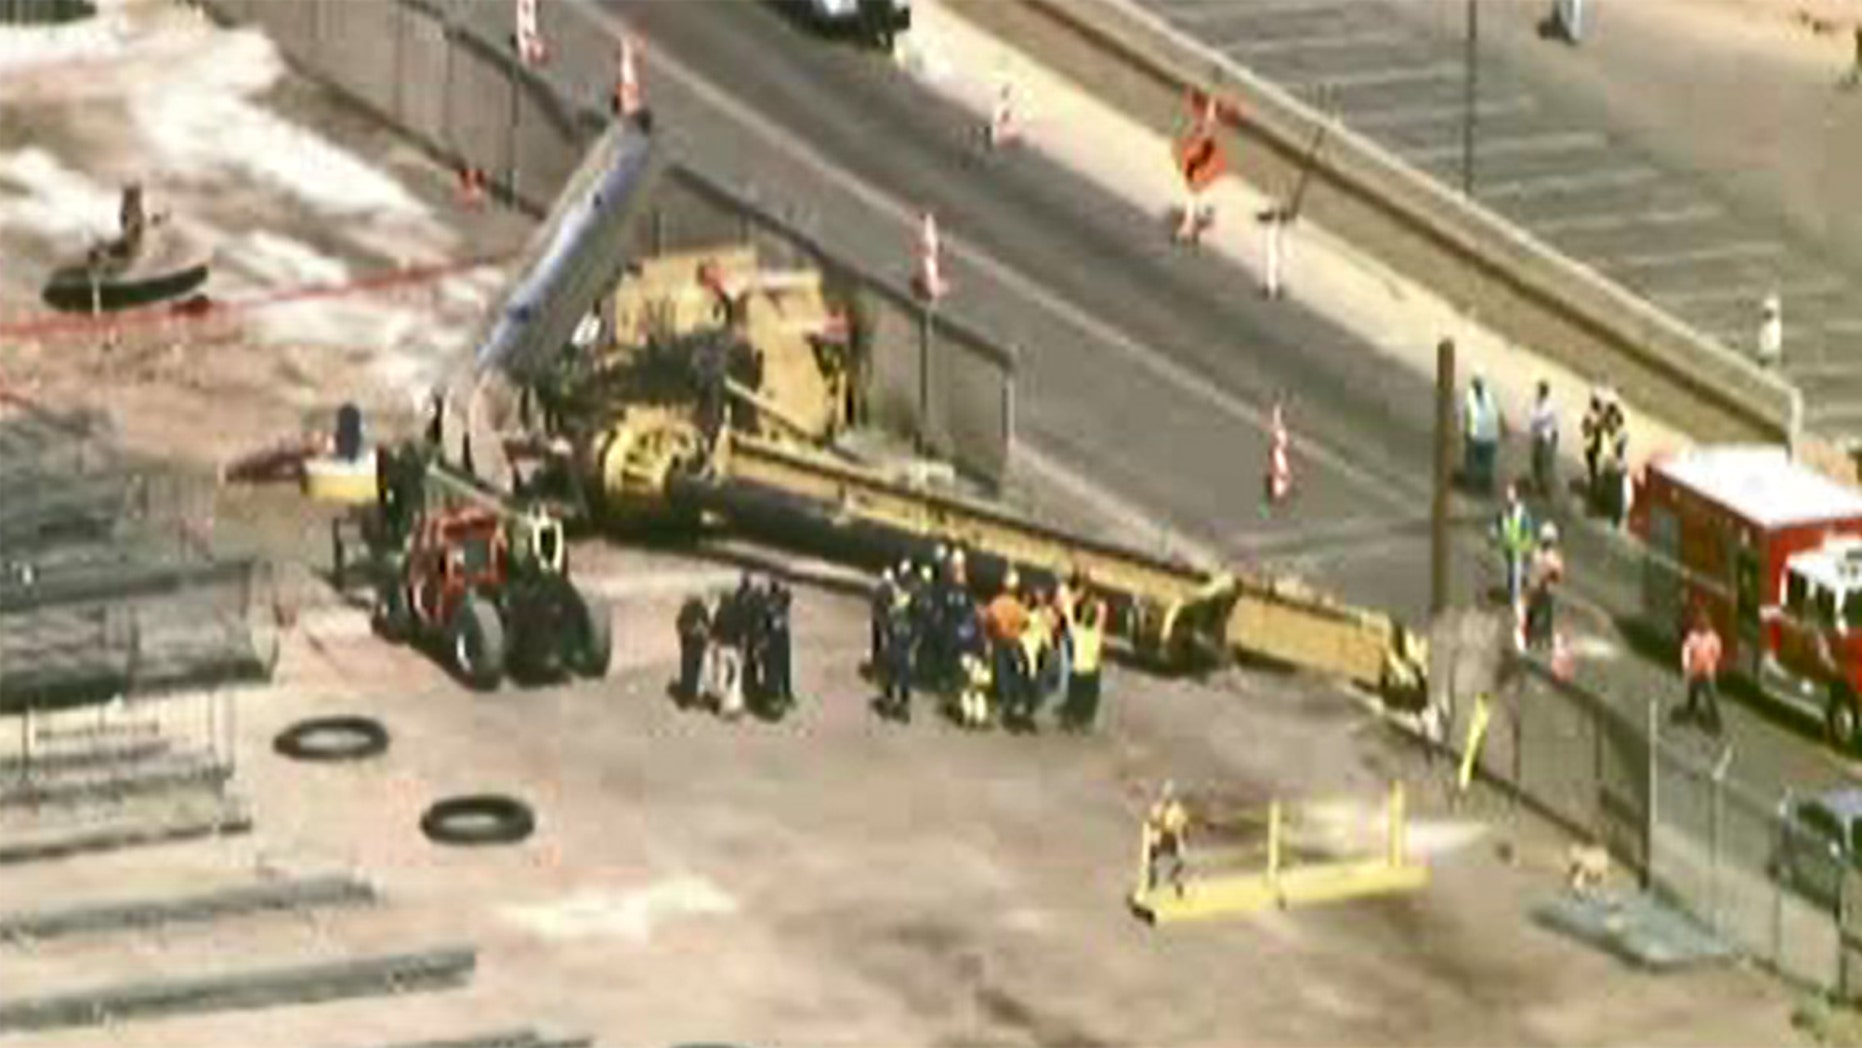 The crane was being utilized for construction of the airport's PHX Sky Train.